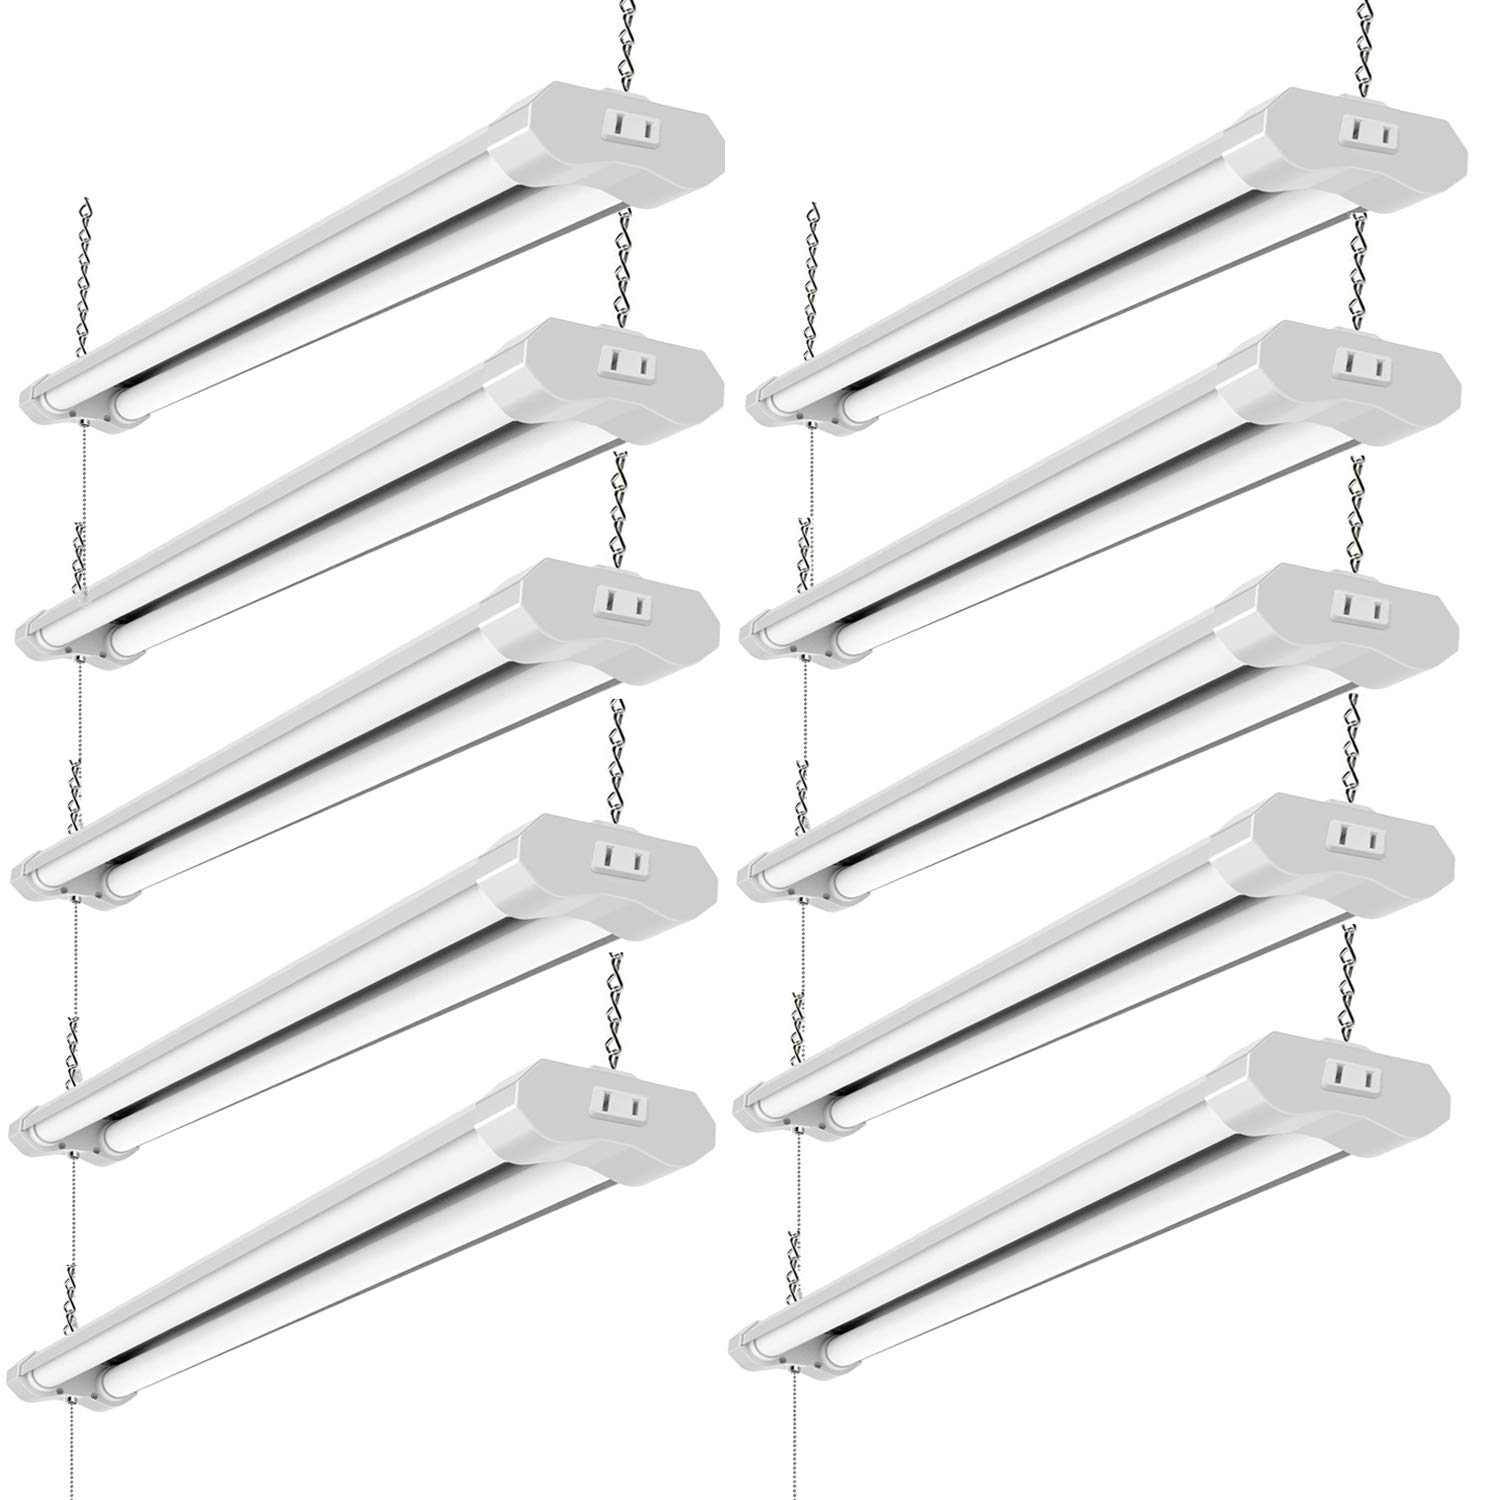 Lzhome(10-Pack) Linkable LED Shop Light for garages,4FT 4500LM,40W 5000K Daylight White, LED Wrapround Light, with Pull Chain (ON/Off),Linear Worklight Fixture with Plug (10 Pack)